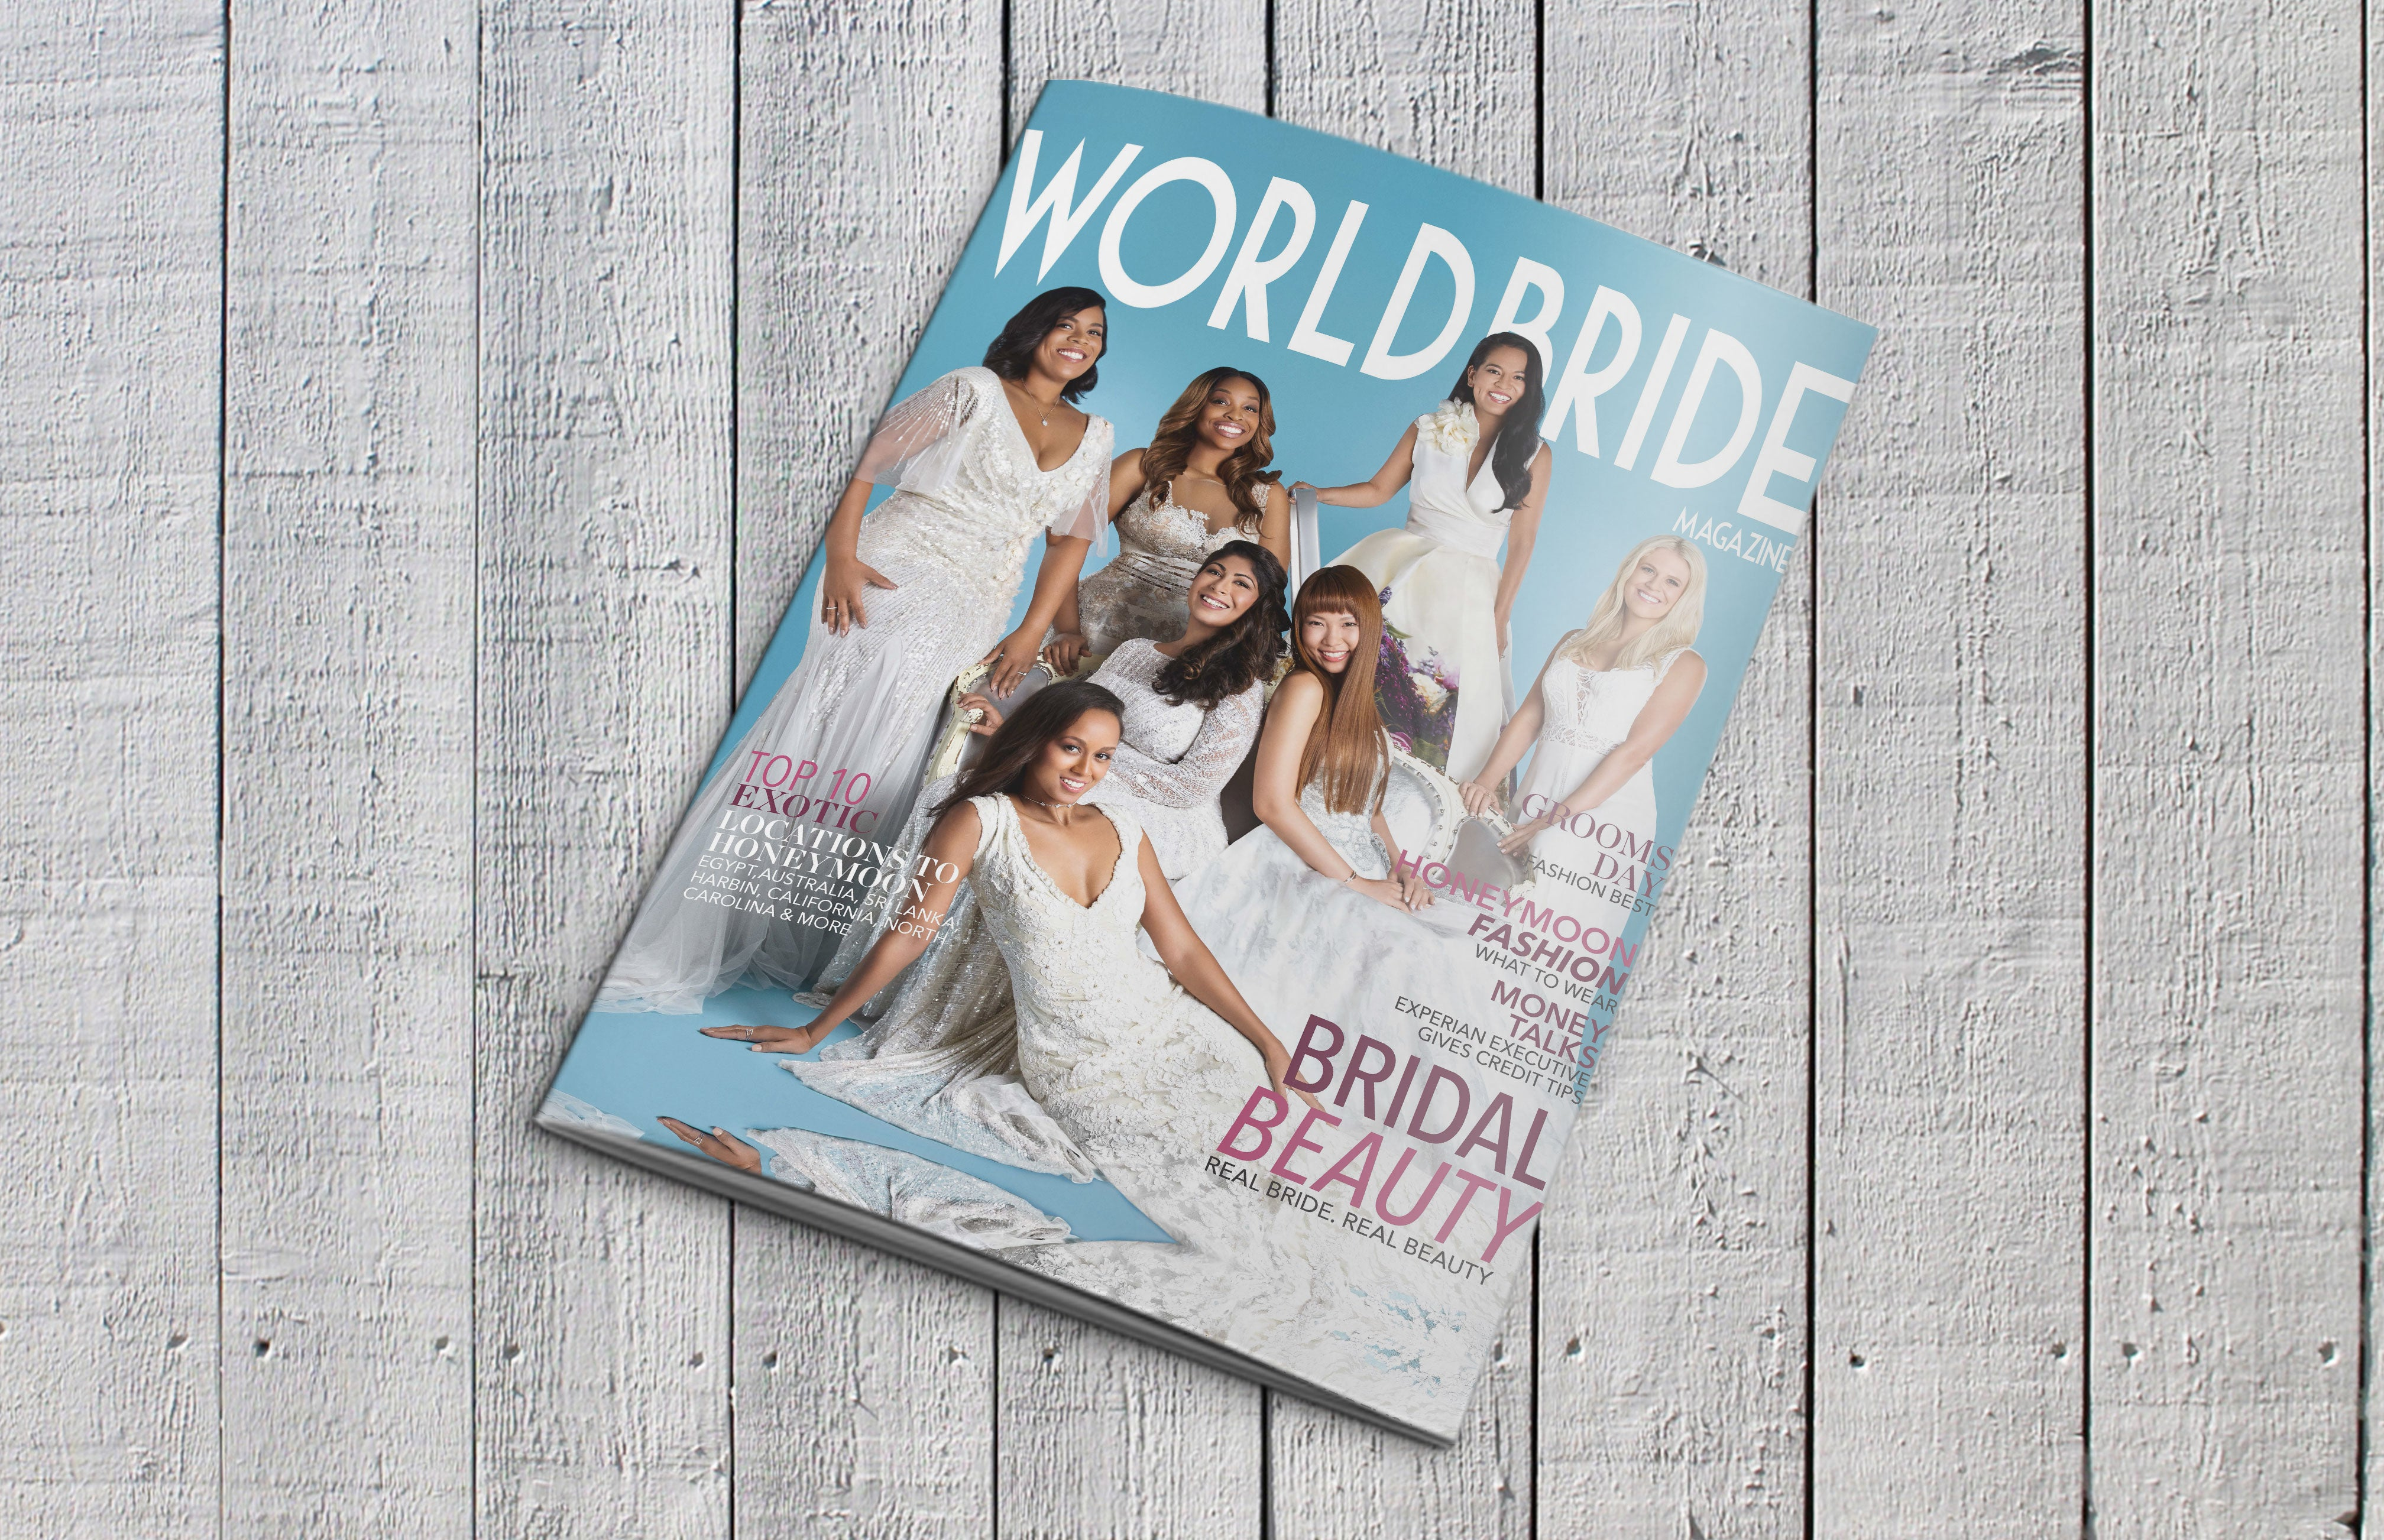 World Bride magazine on wooden table top